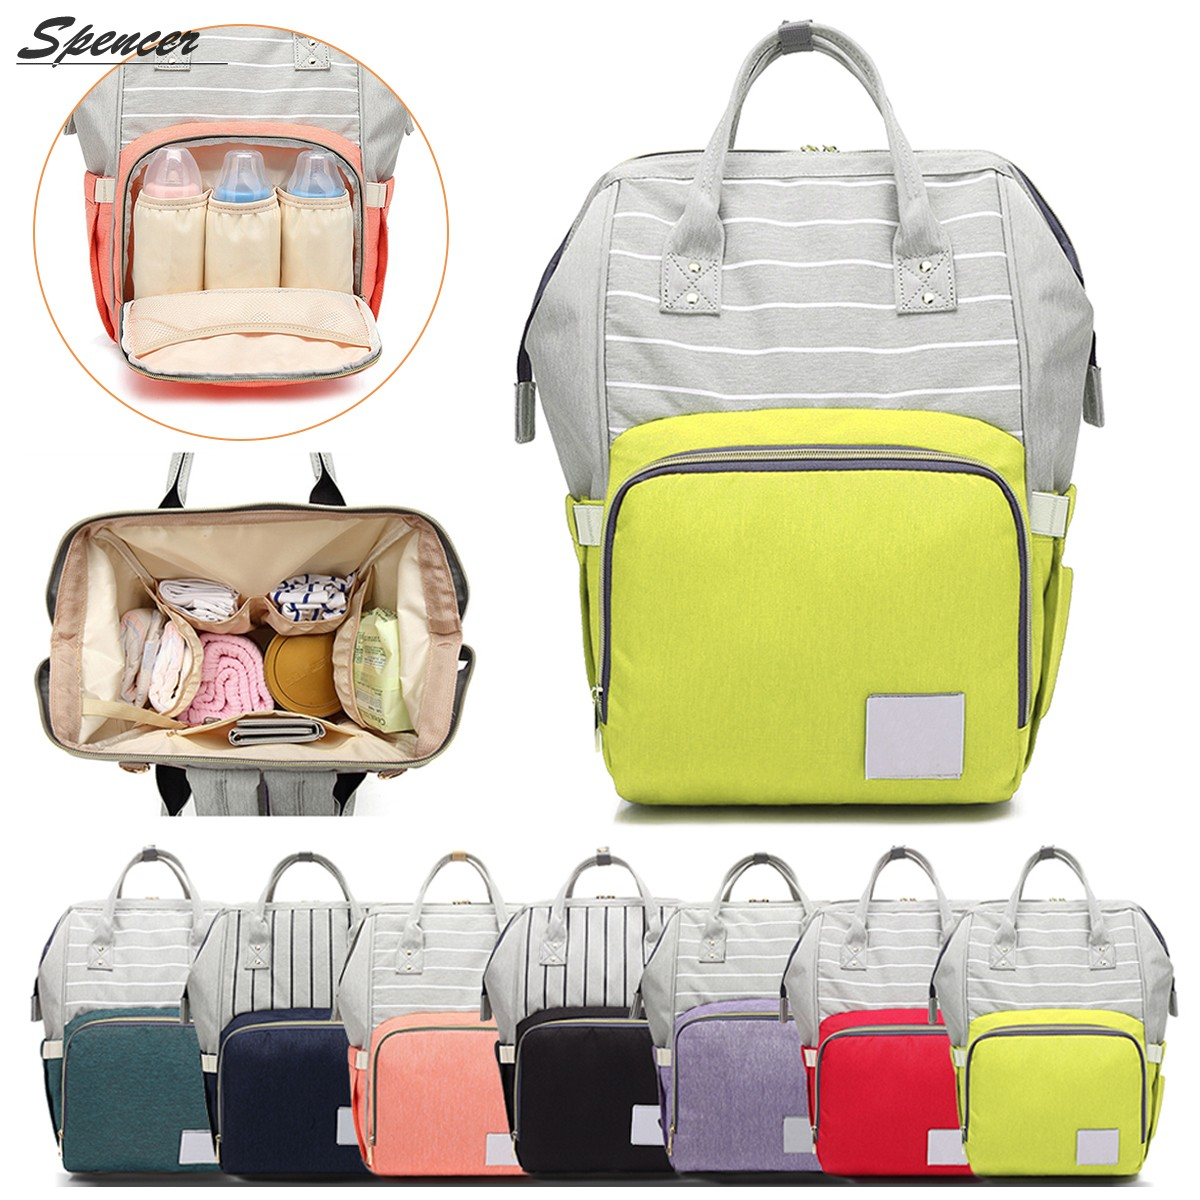 Spencer Diaper Bag Backpack Multi-Function Waterproof Travel Maternity Nappy Bag for Baby Care, Large Capacity, Stylish and Durable (Yellow)